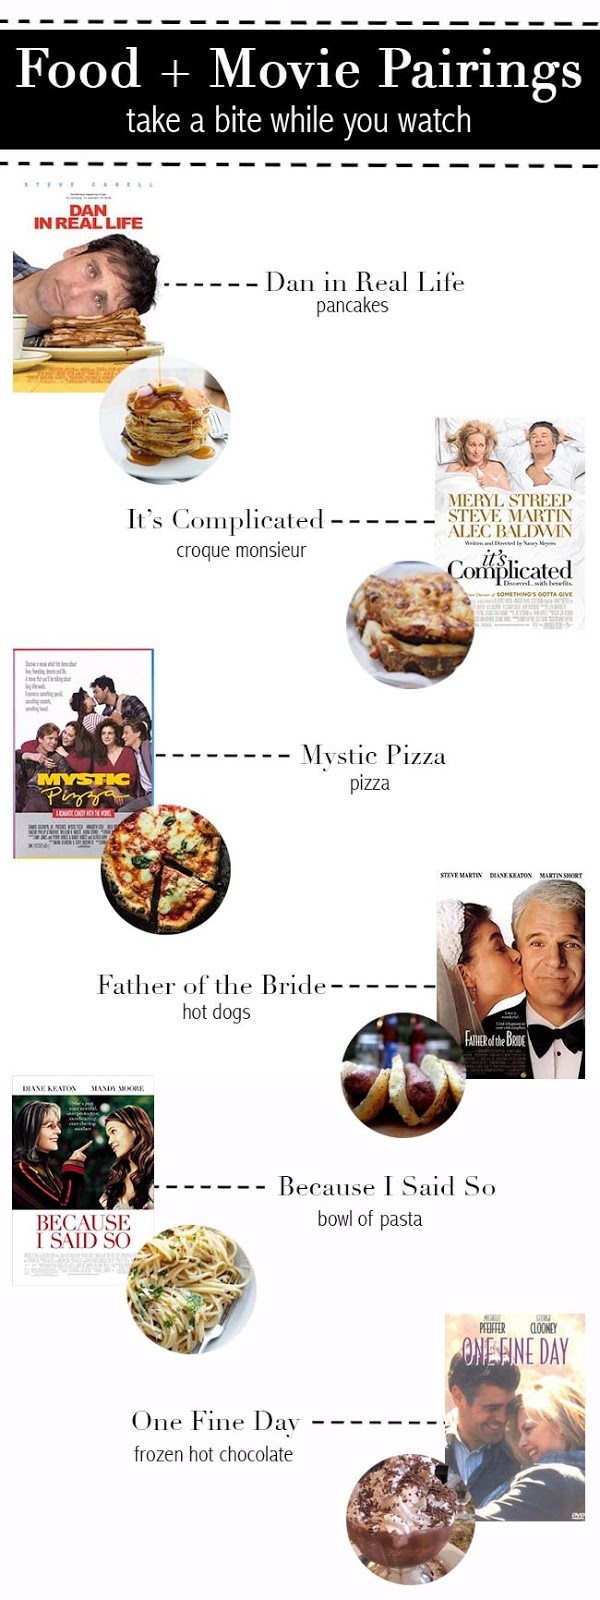 food-and-movie-pairings.jpg